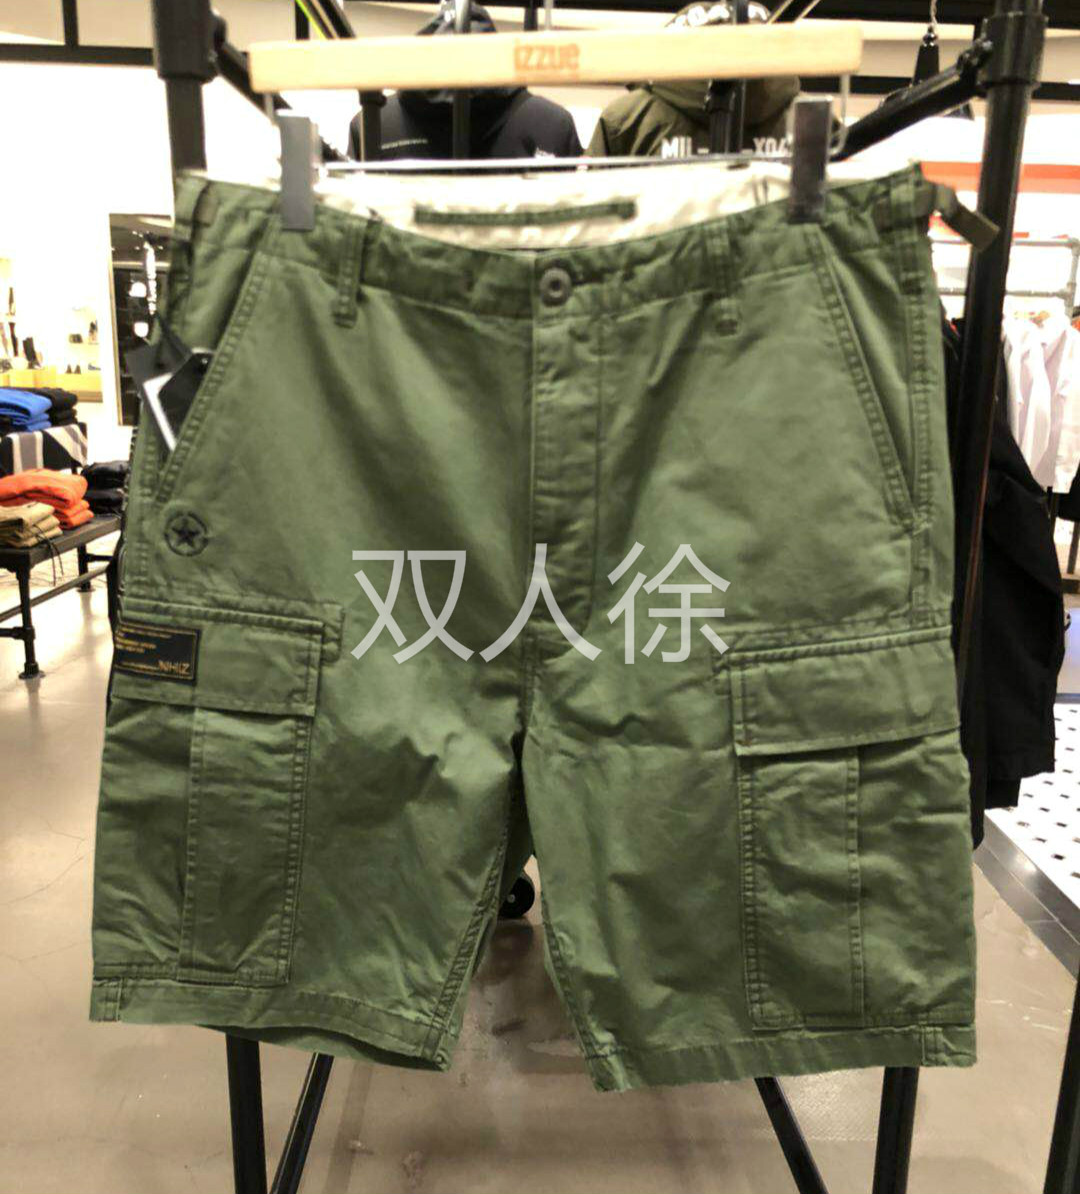 Izzue nhiz shorts mens spring and Summer Youth Popular embroidered letter Multi Pocket tooling shorts casual pants